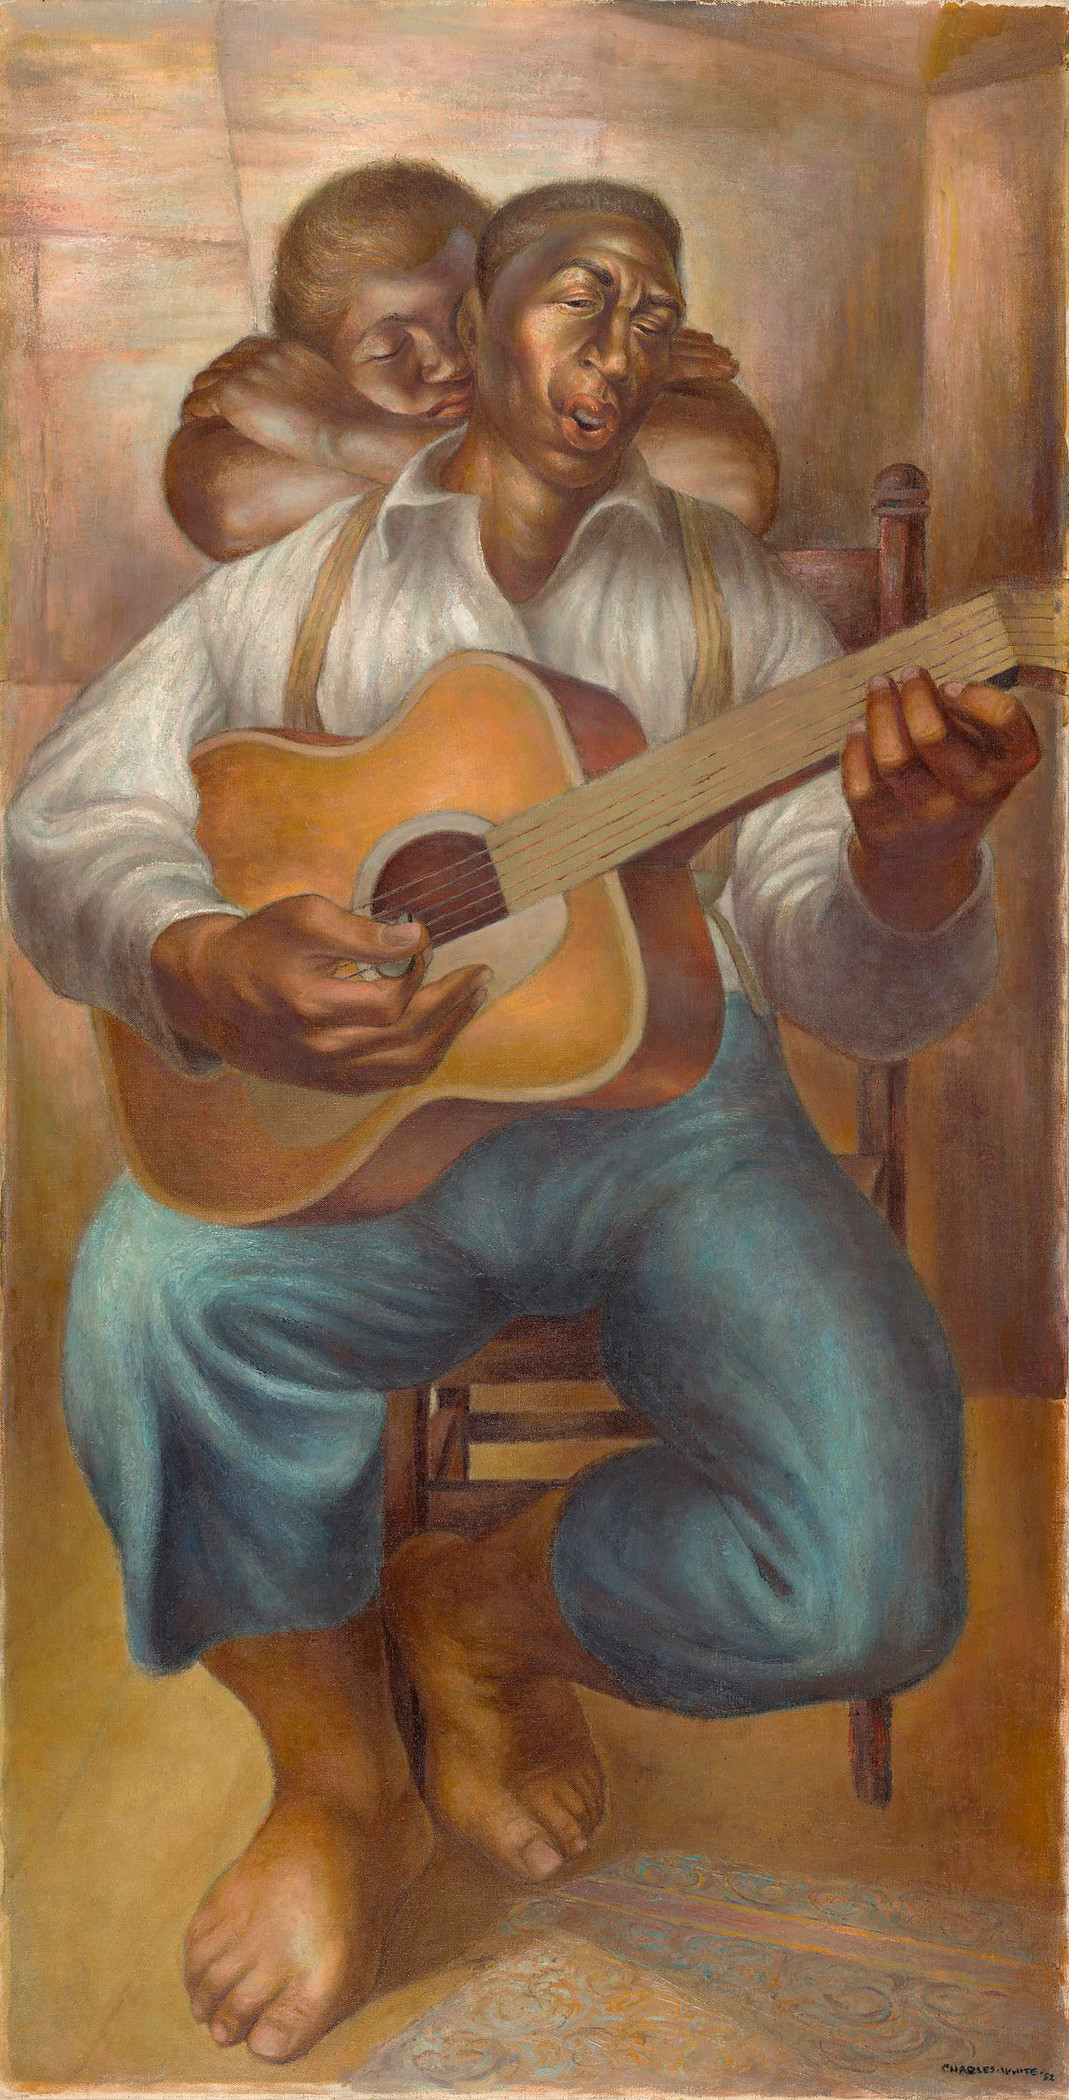 Charles White, Goodnight Irene, 1952, The Nelson-Atkins Museum of Art, Kansas City, Missouri, Purchase: acquired through a lead gift provided by Sarah and Landon Rowland through The Ever Glades Fund; major support provided by Lee Lyon, in memory of Joanne Lyon; Sprint; James and Elizabeth Tinsman; Neil D. Karbank, and The Sosland Family; Generous support provided by John and Joanne Bluford; The Stanley H. Durwood Foundation; Gregory M. Glore; Maurice Watson; Anne and Cliff Gall, Dr. Sere and Mrs. MaryJane Myers and Family; Gary and Debby Ballard; Dr. Loretta M. Britton; Catherine L. Futter, in memory of Mathew and Erna Futter; Jean and Moulton Green, Jr., in honor of Rose Bryant; Dr. Willie and Ms. Sandra A. J. Lawrence; Randall and Helen Ferguson; Dr. Valerie E. Chow and Judge Jon R. Gray (Ret.); Gwendolyn J. Cooke, Ph.D.; Dwayne and Freida Crompton; Leodis and N. June Davis; Kimberly C. Young; Tom and Karenbeth Zacharias; Jim Baggett and Marguerite Ermeling; Rose Bryant; Tasha and Julián Zugazagoitia; Antonia Boström and Dean Baker; Sarah Beeks Higdon; Kathleen and Kevin Collison; Katelyn Crawford and John Kupstas; Kimberly Hinkle and Jason Menefee; Stephanie and Brett Knappe; Jan and Michael Schall; and Michele Valentine, in memory of Marcella Hillerman, 2014.28, © The Charles White Archives